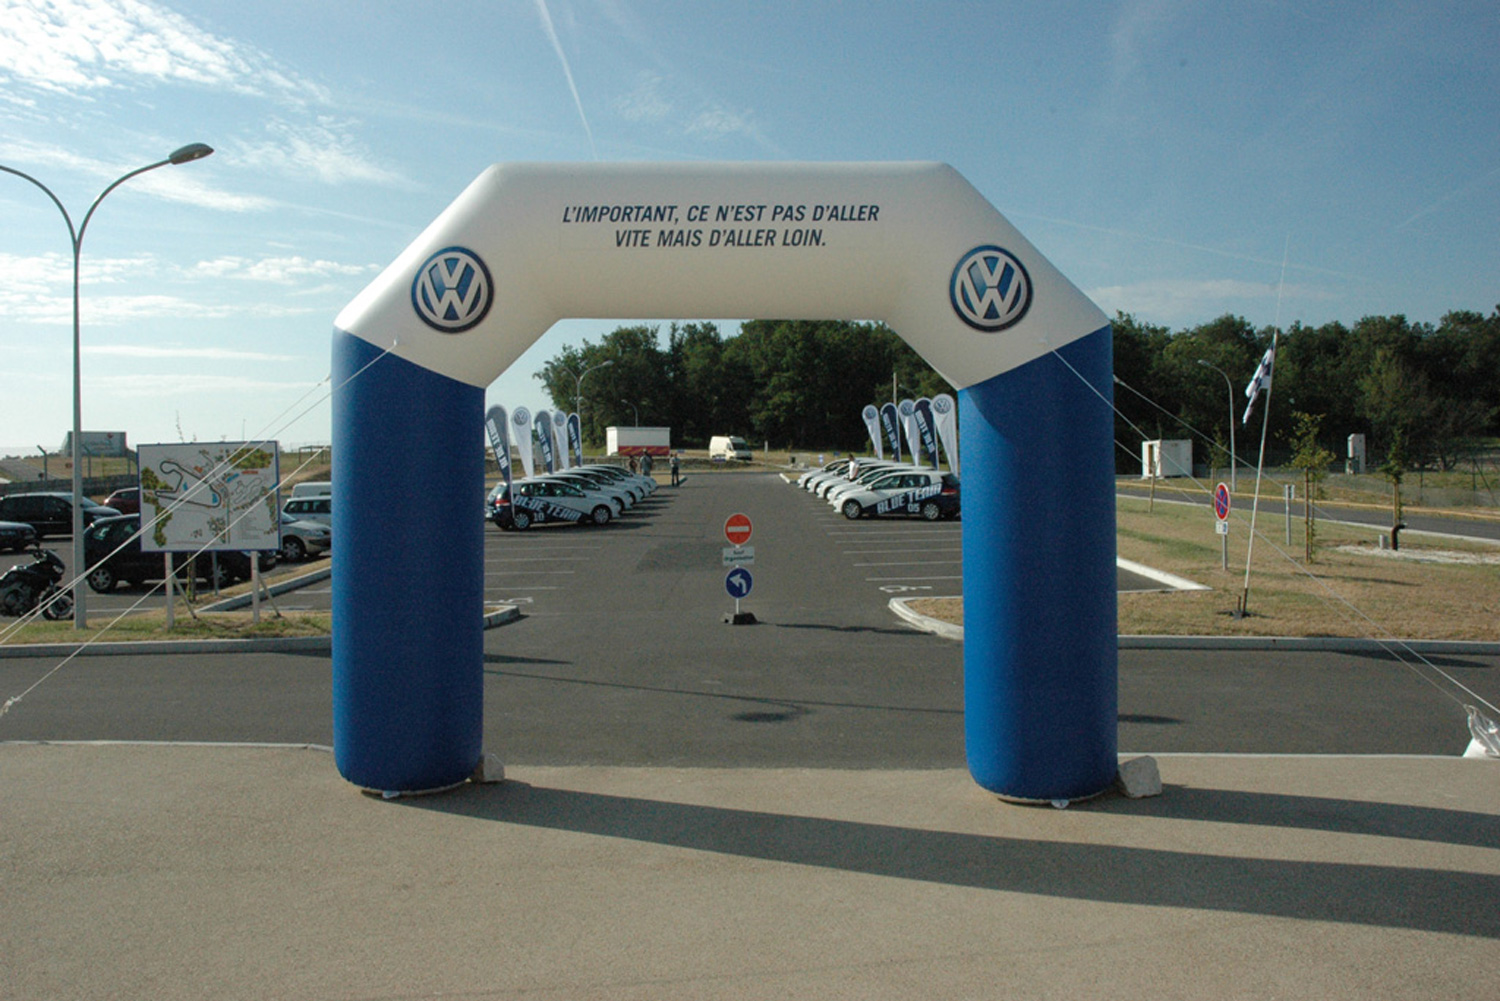 VWTBCProject2011>stage4.jpg